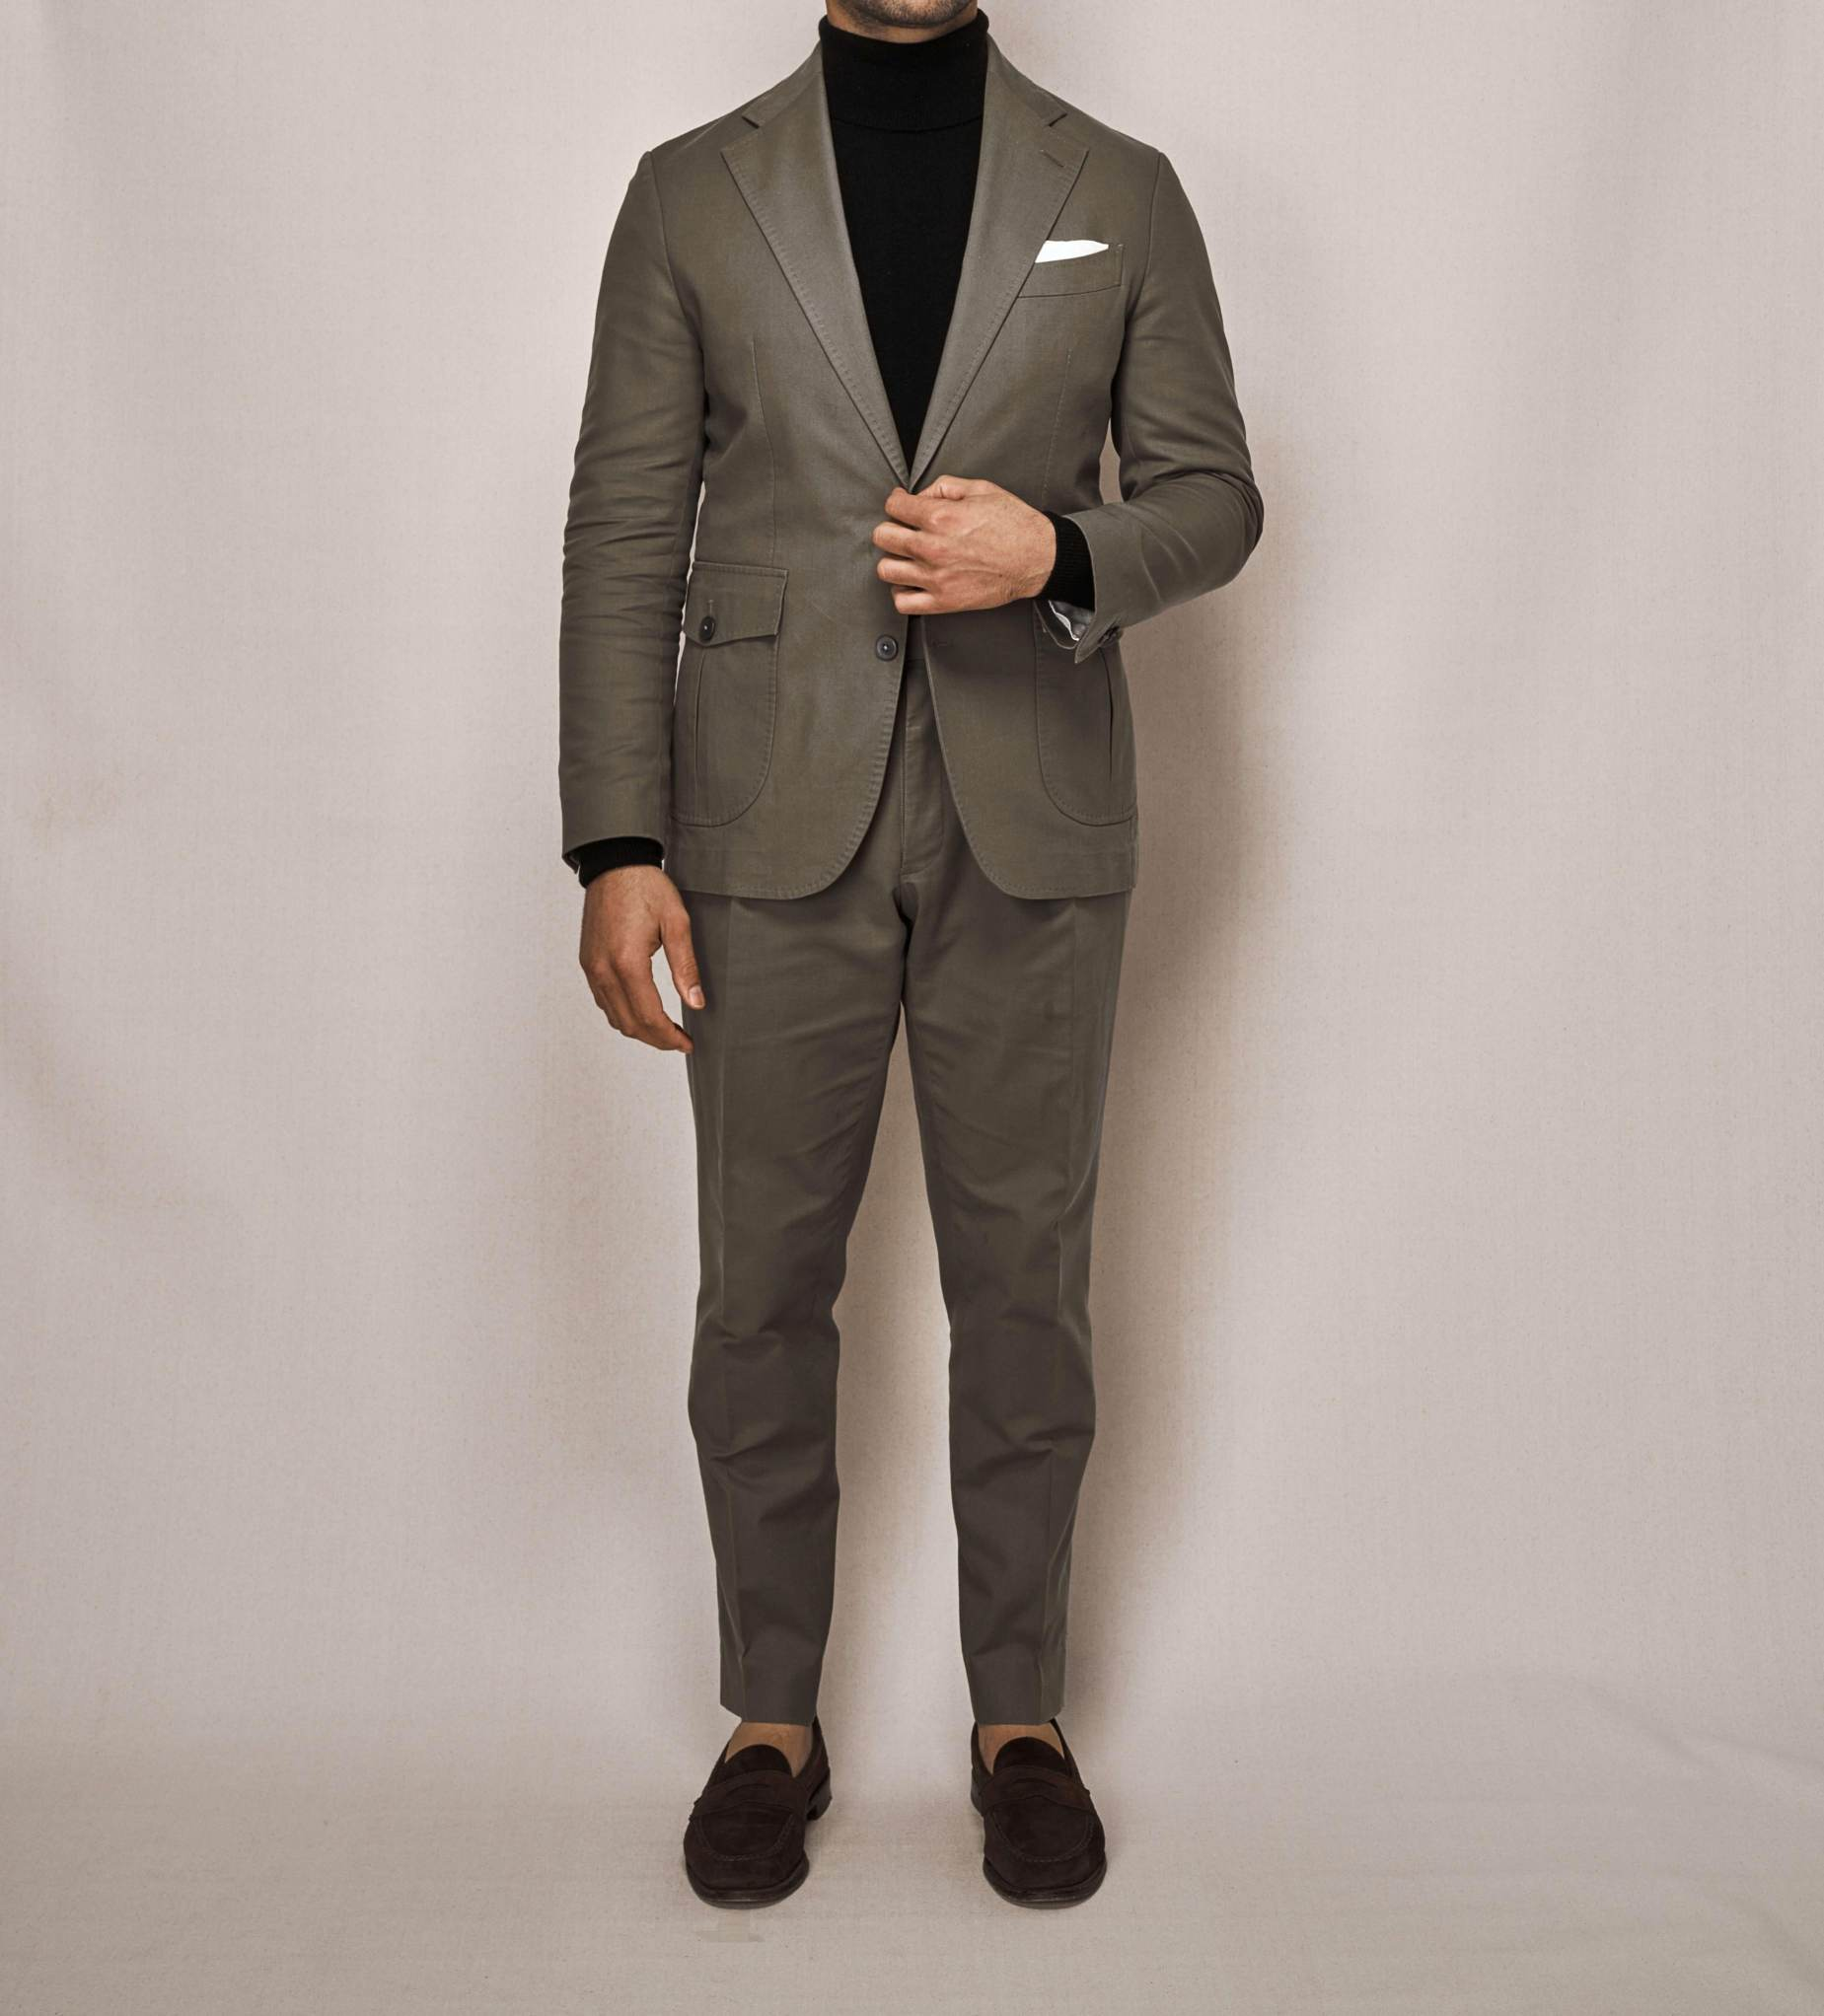 Cotton Stretch Sports Two Piece Suit | Olive